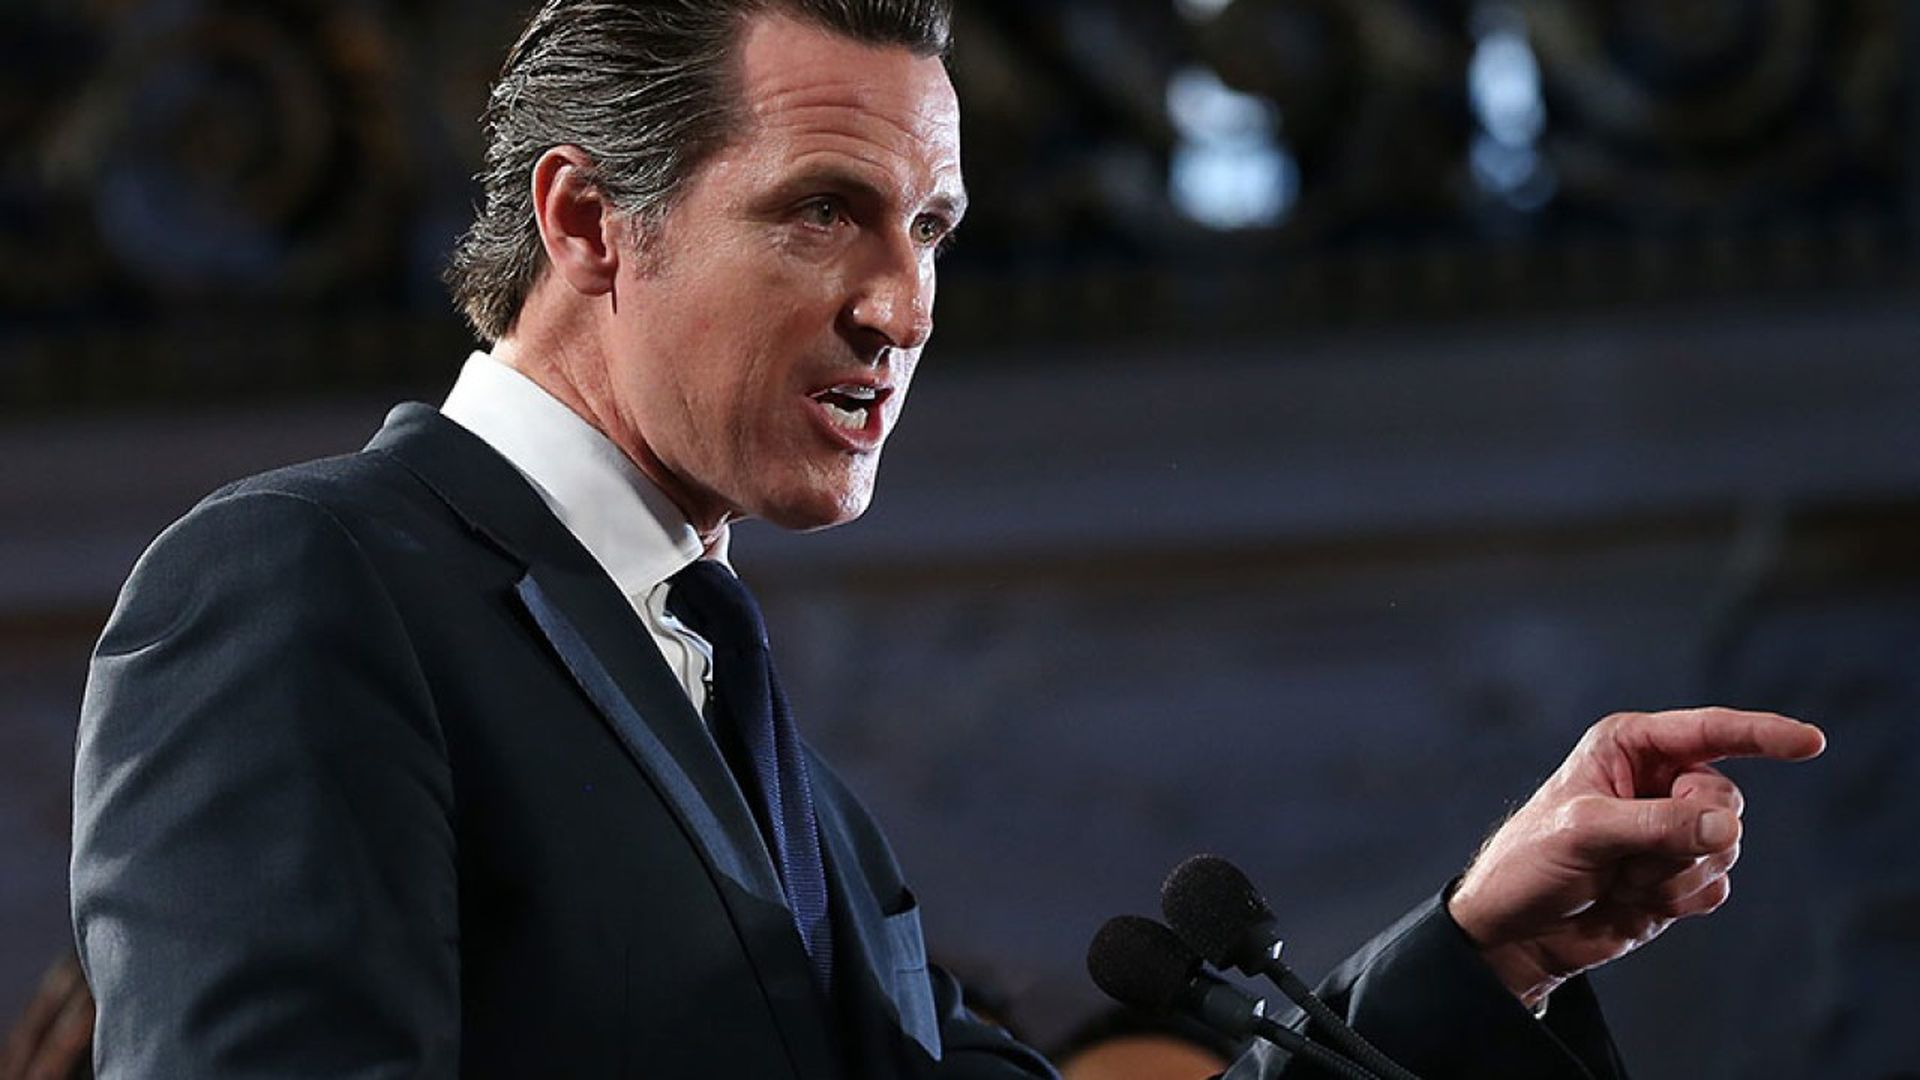 Gov. Gavin Newsom says his trip to El Salvador is designed to counter President Trump.